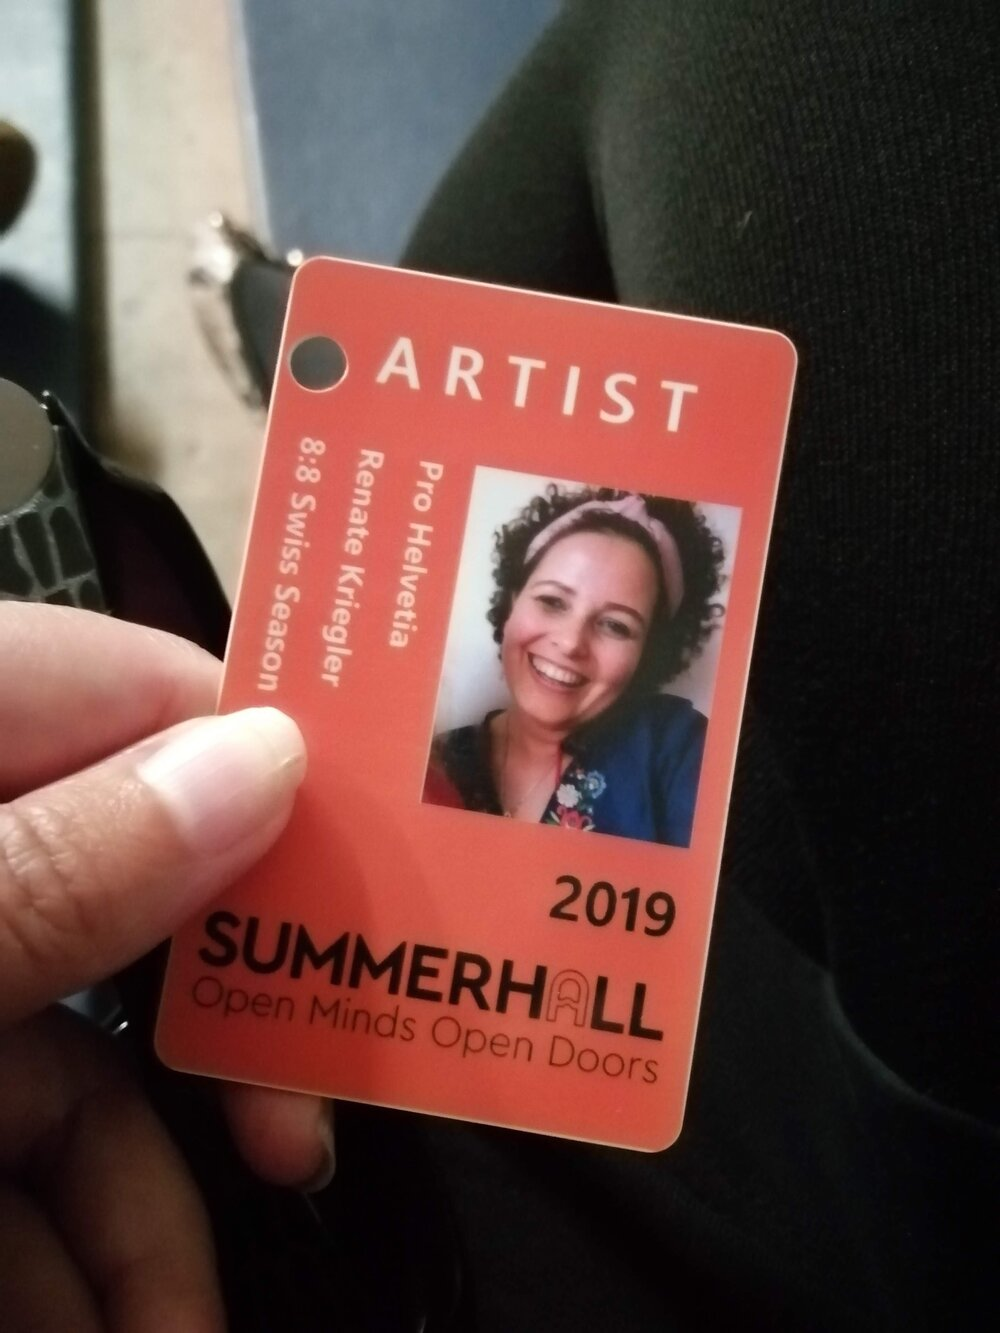 image of hand holding up Renate's ID pass with 'artist' at the top.